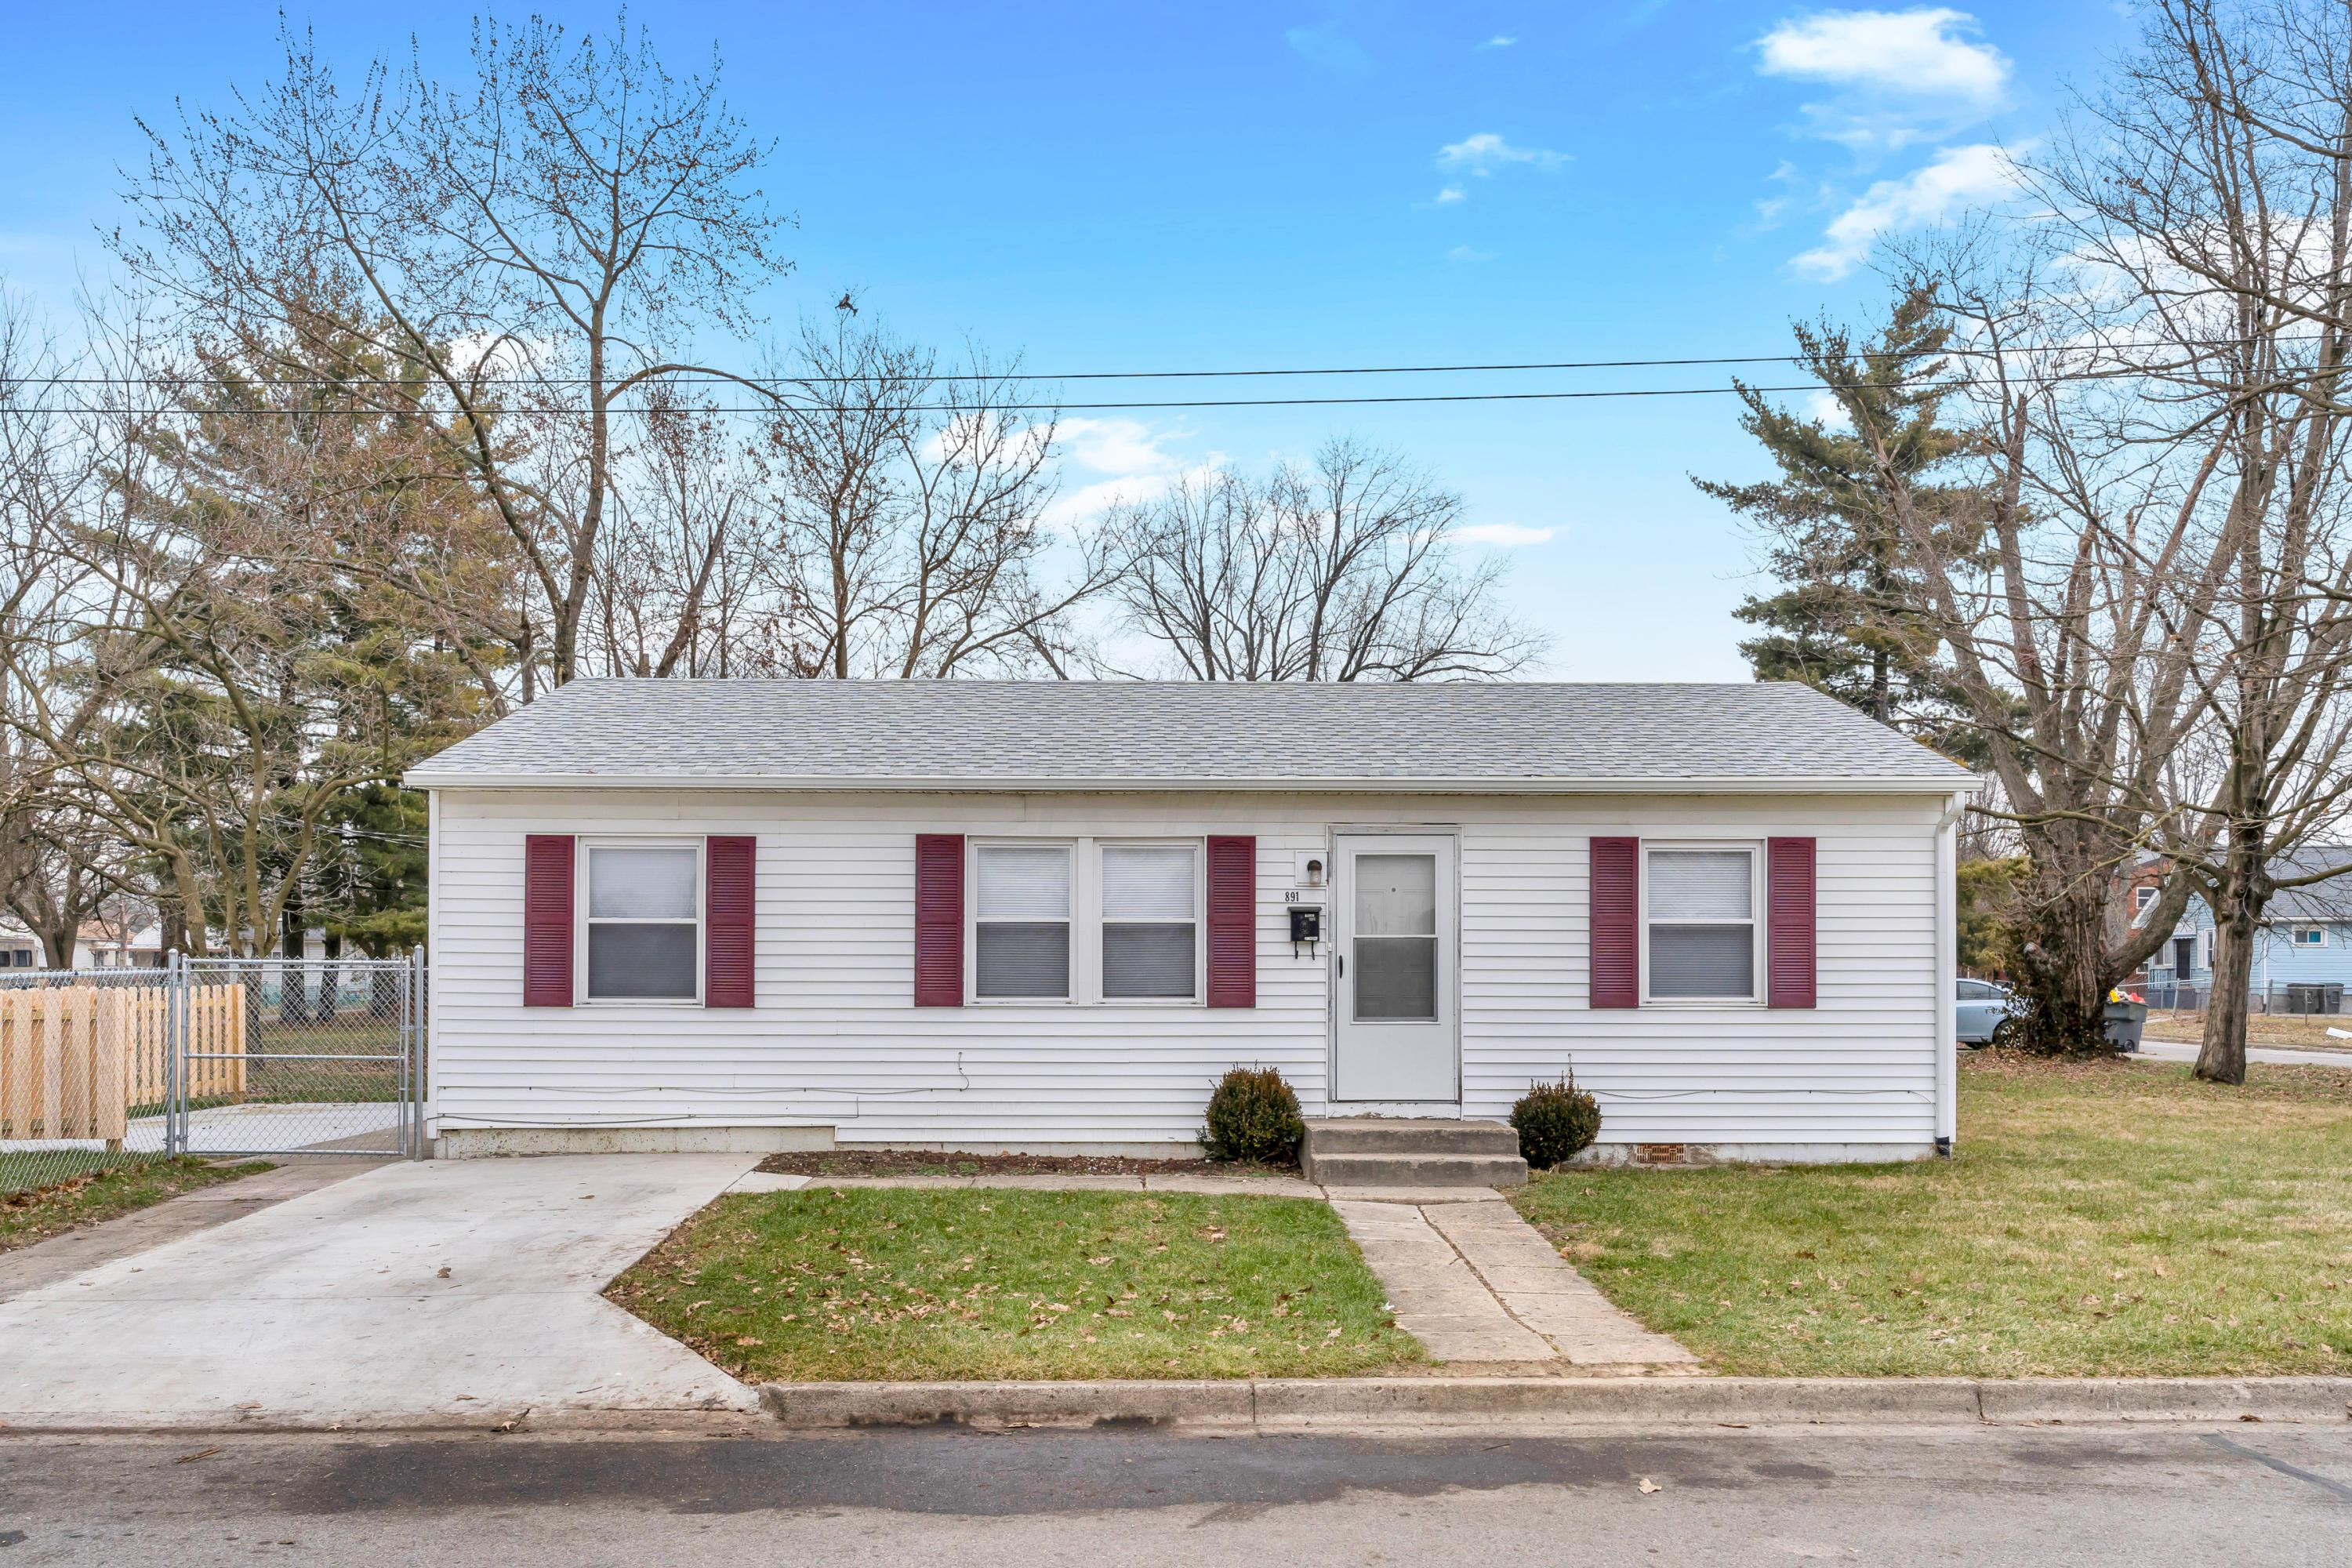 891 Rarig Avenue, Columbus, Ohio 43219, 3 Bedrooms Bedrooms, ,1 BathroomBathrooms,Residential,For Sale,Rarig,221001149